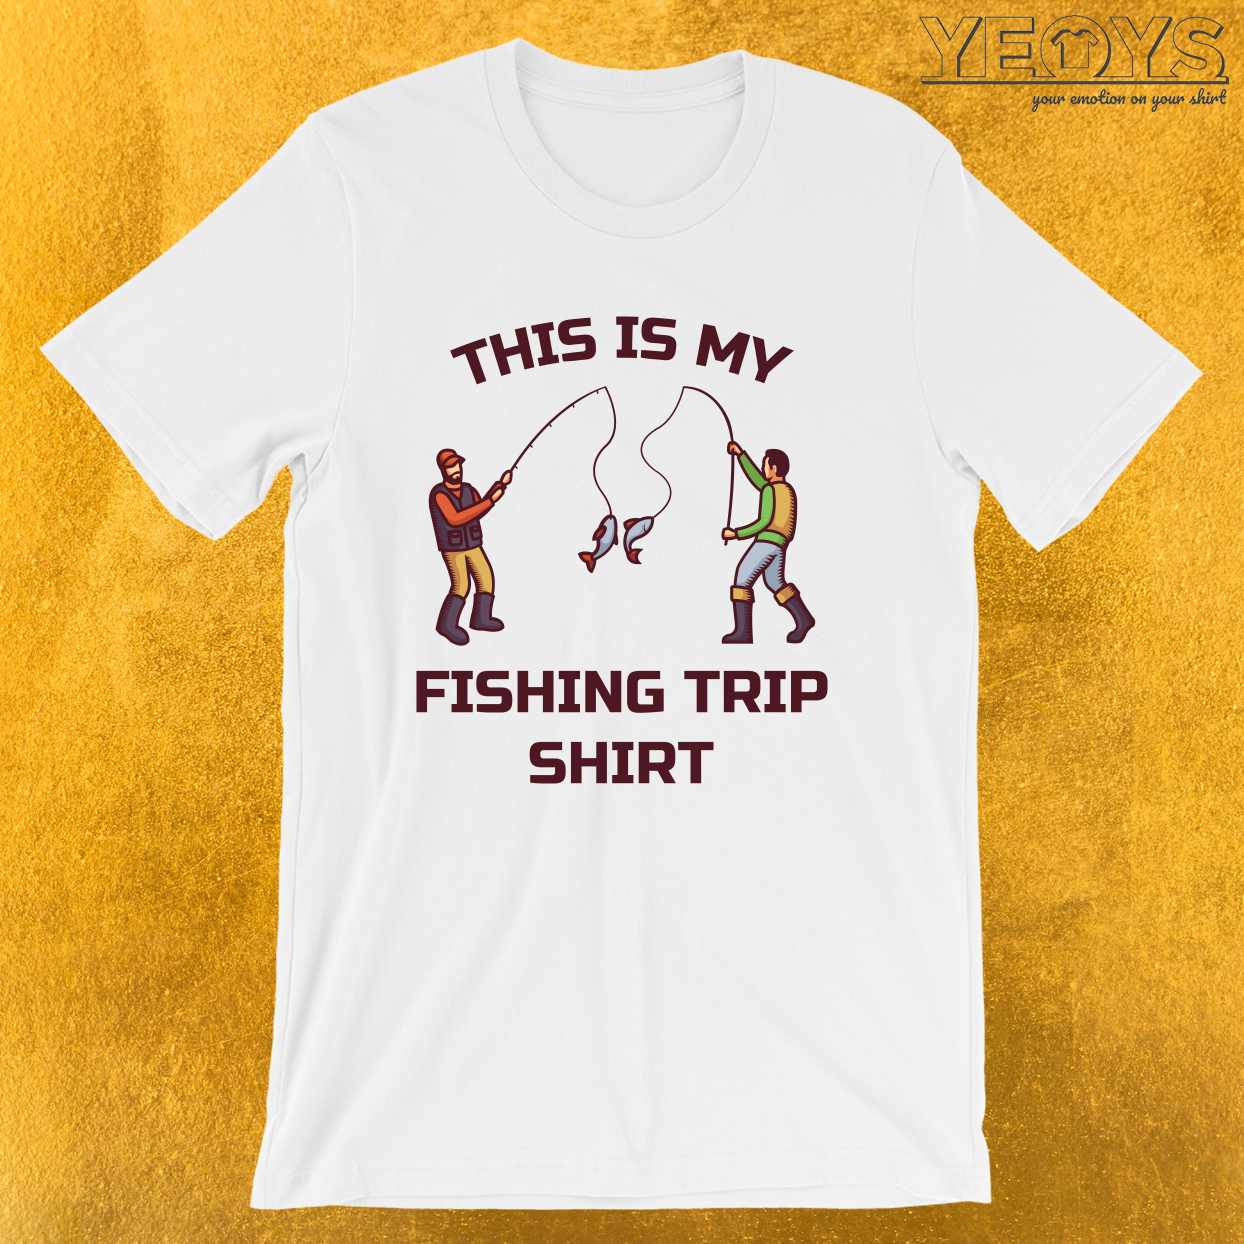 This Is My Fishing Trip Shirt – Fishing Trip Tee